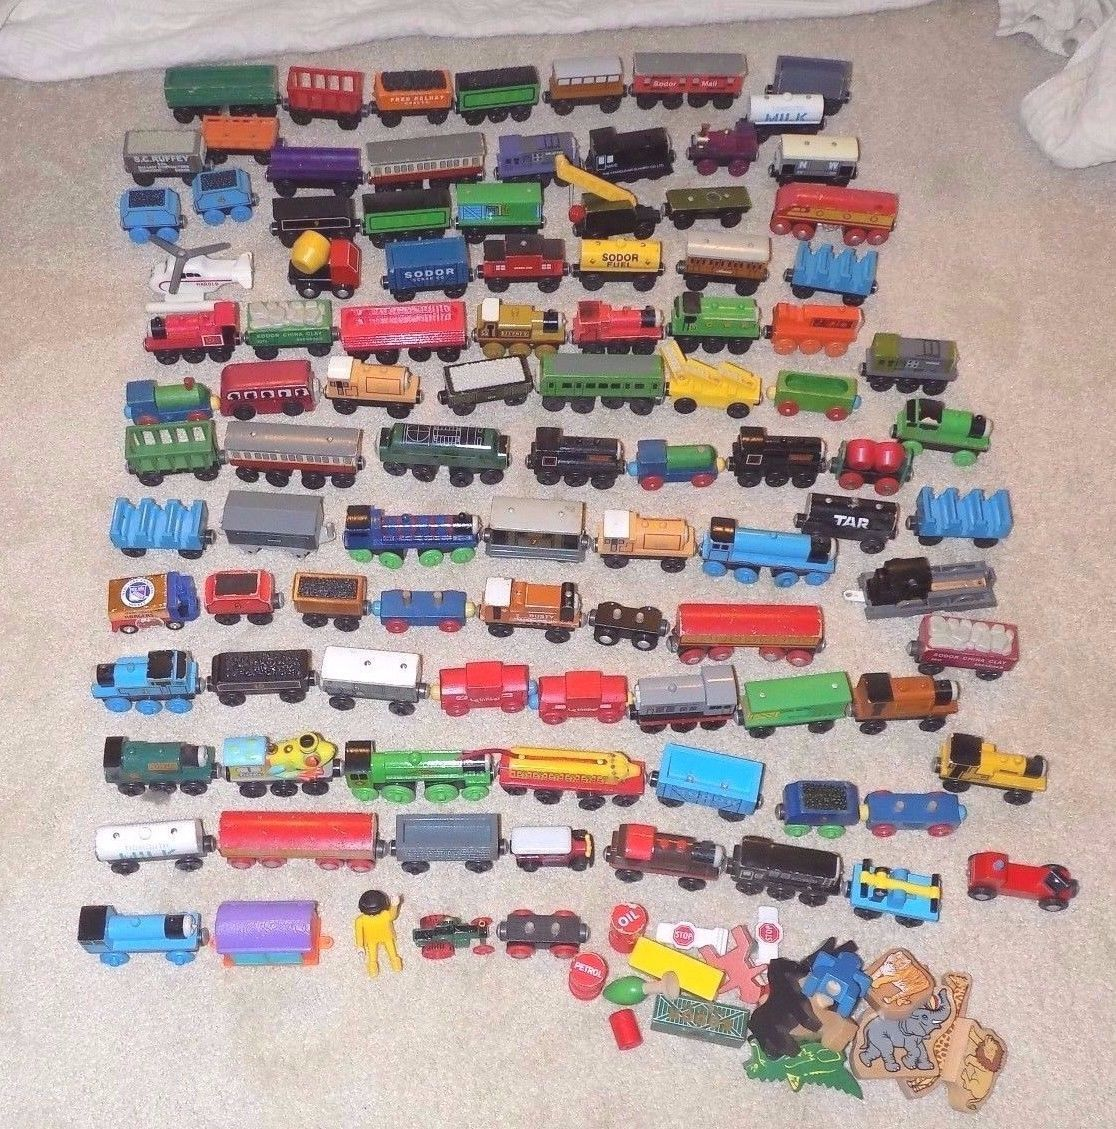 Gigantic Lot of 100 Thomas The Tank Engine Train Cars  Accessories https://t.co/kapWGvJPCY https://t.co/j3YBQDlgG0